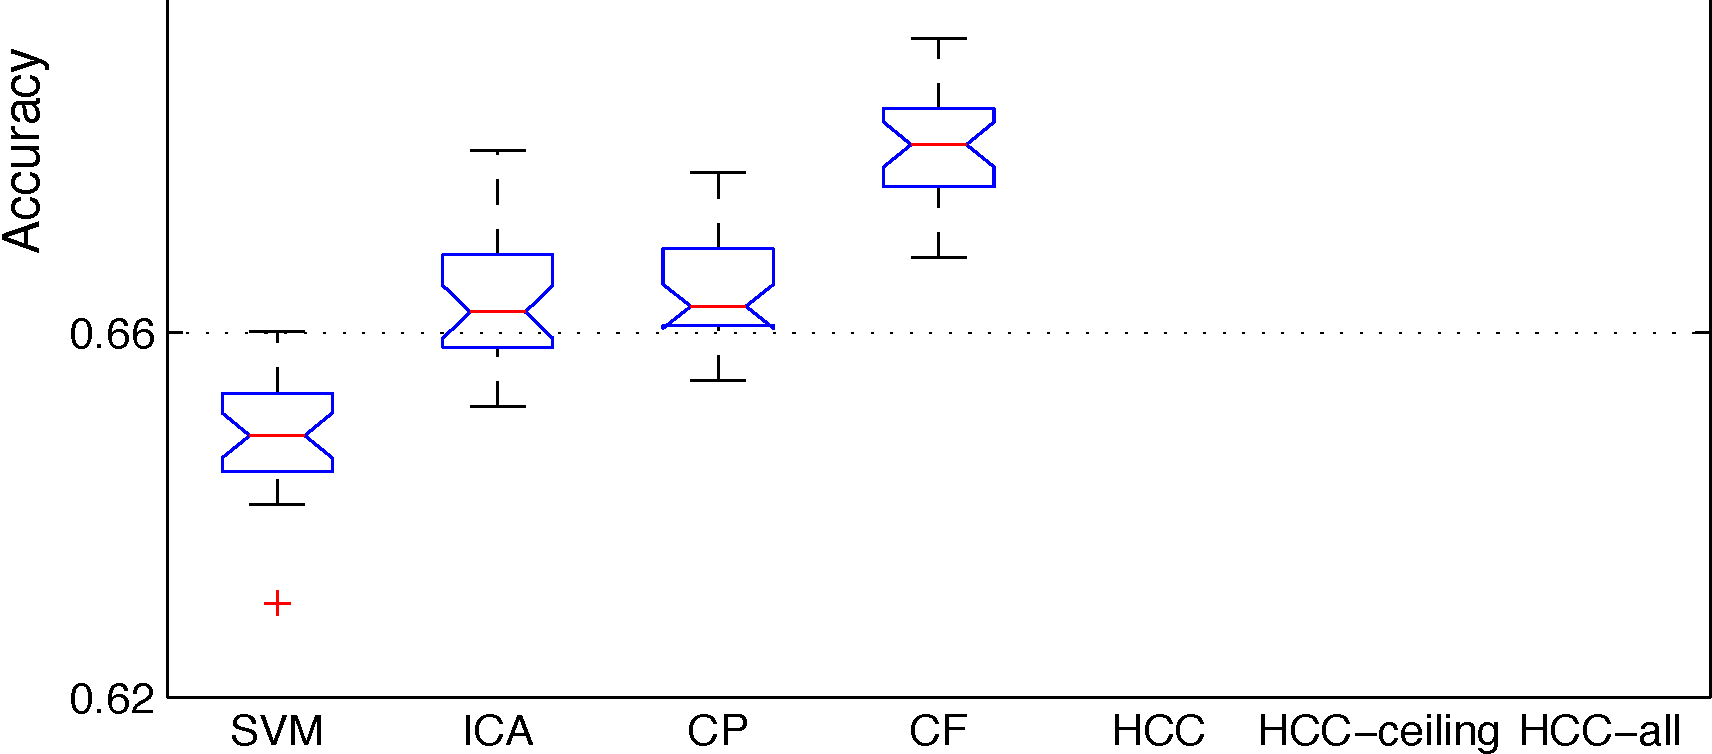 Figure 3 for Meta Path-Based Collective Classification in Heterogeneous Information Networks